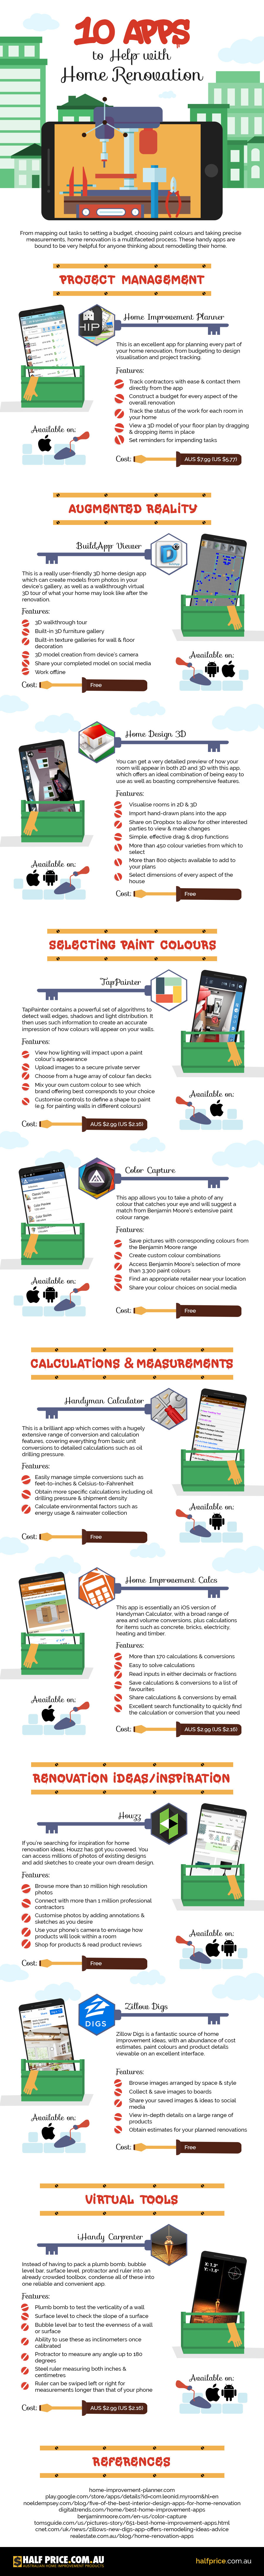 Infographic - 10 apps to help with home renovation